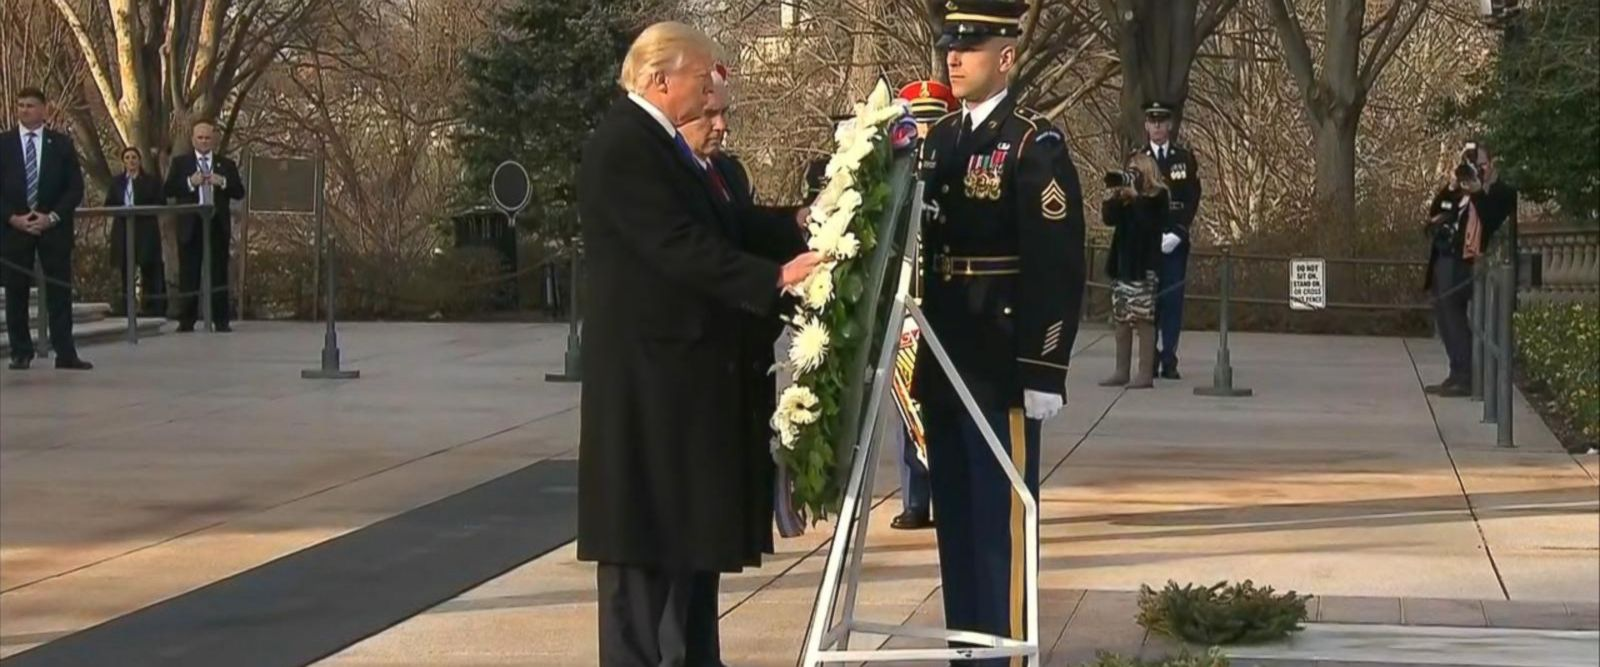 Trump was joined in the ceremony by Vice President-elect Mike Pence.